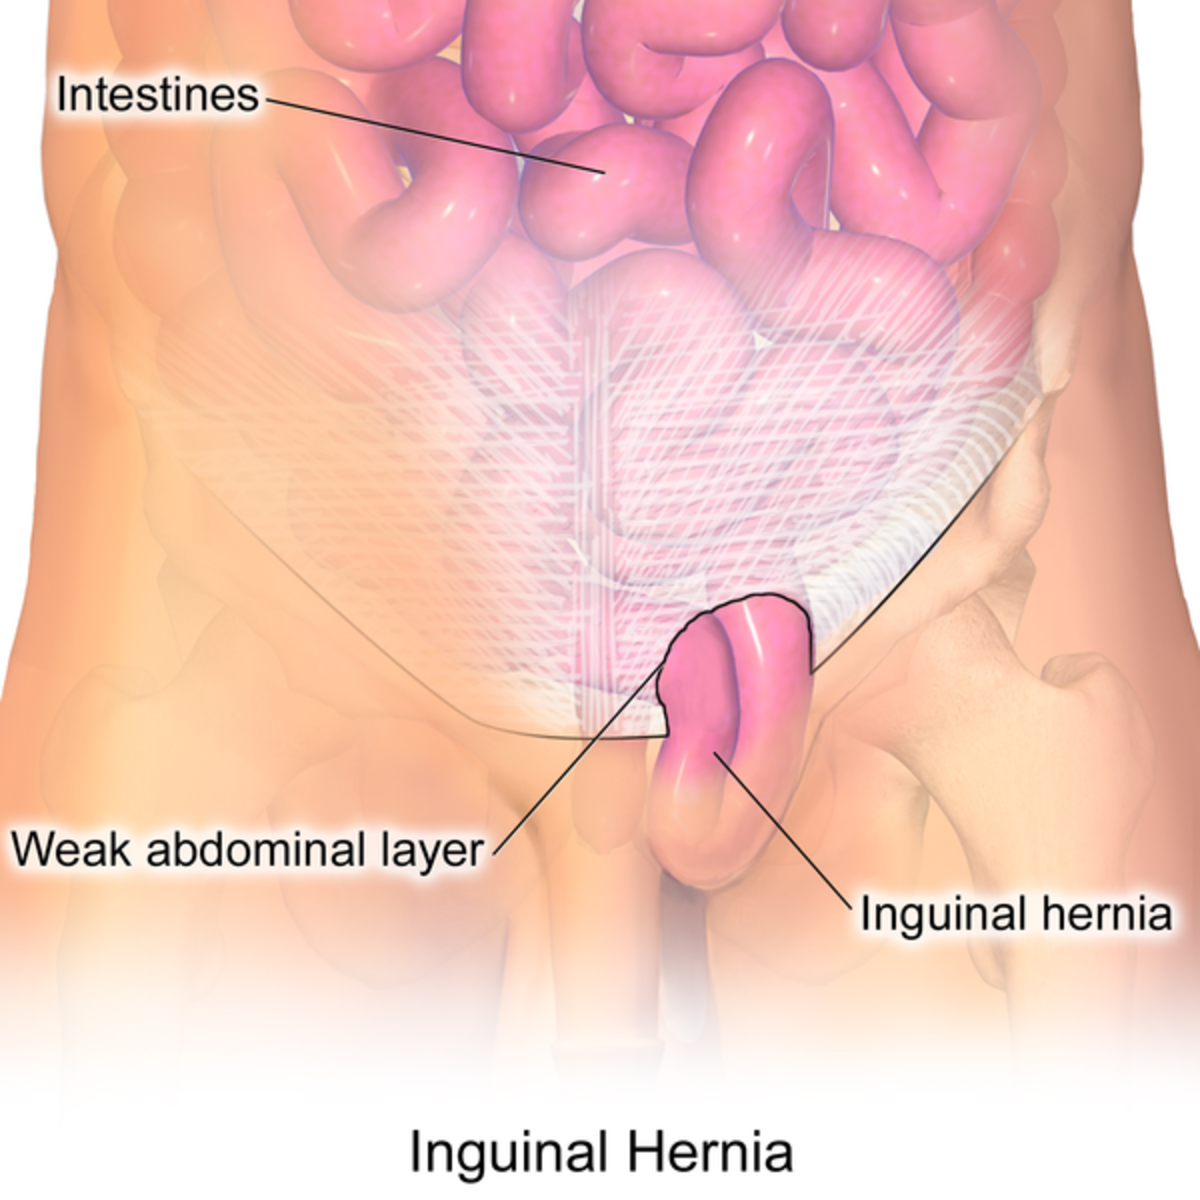 What to Expect After Inguinal Hernia Surgery